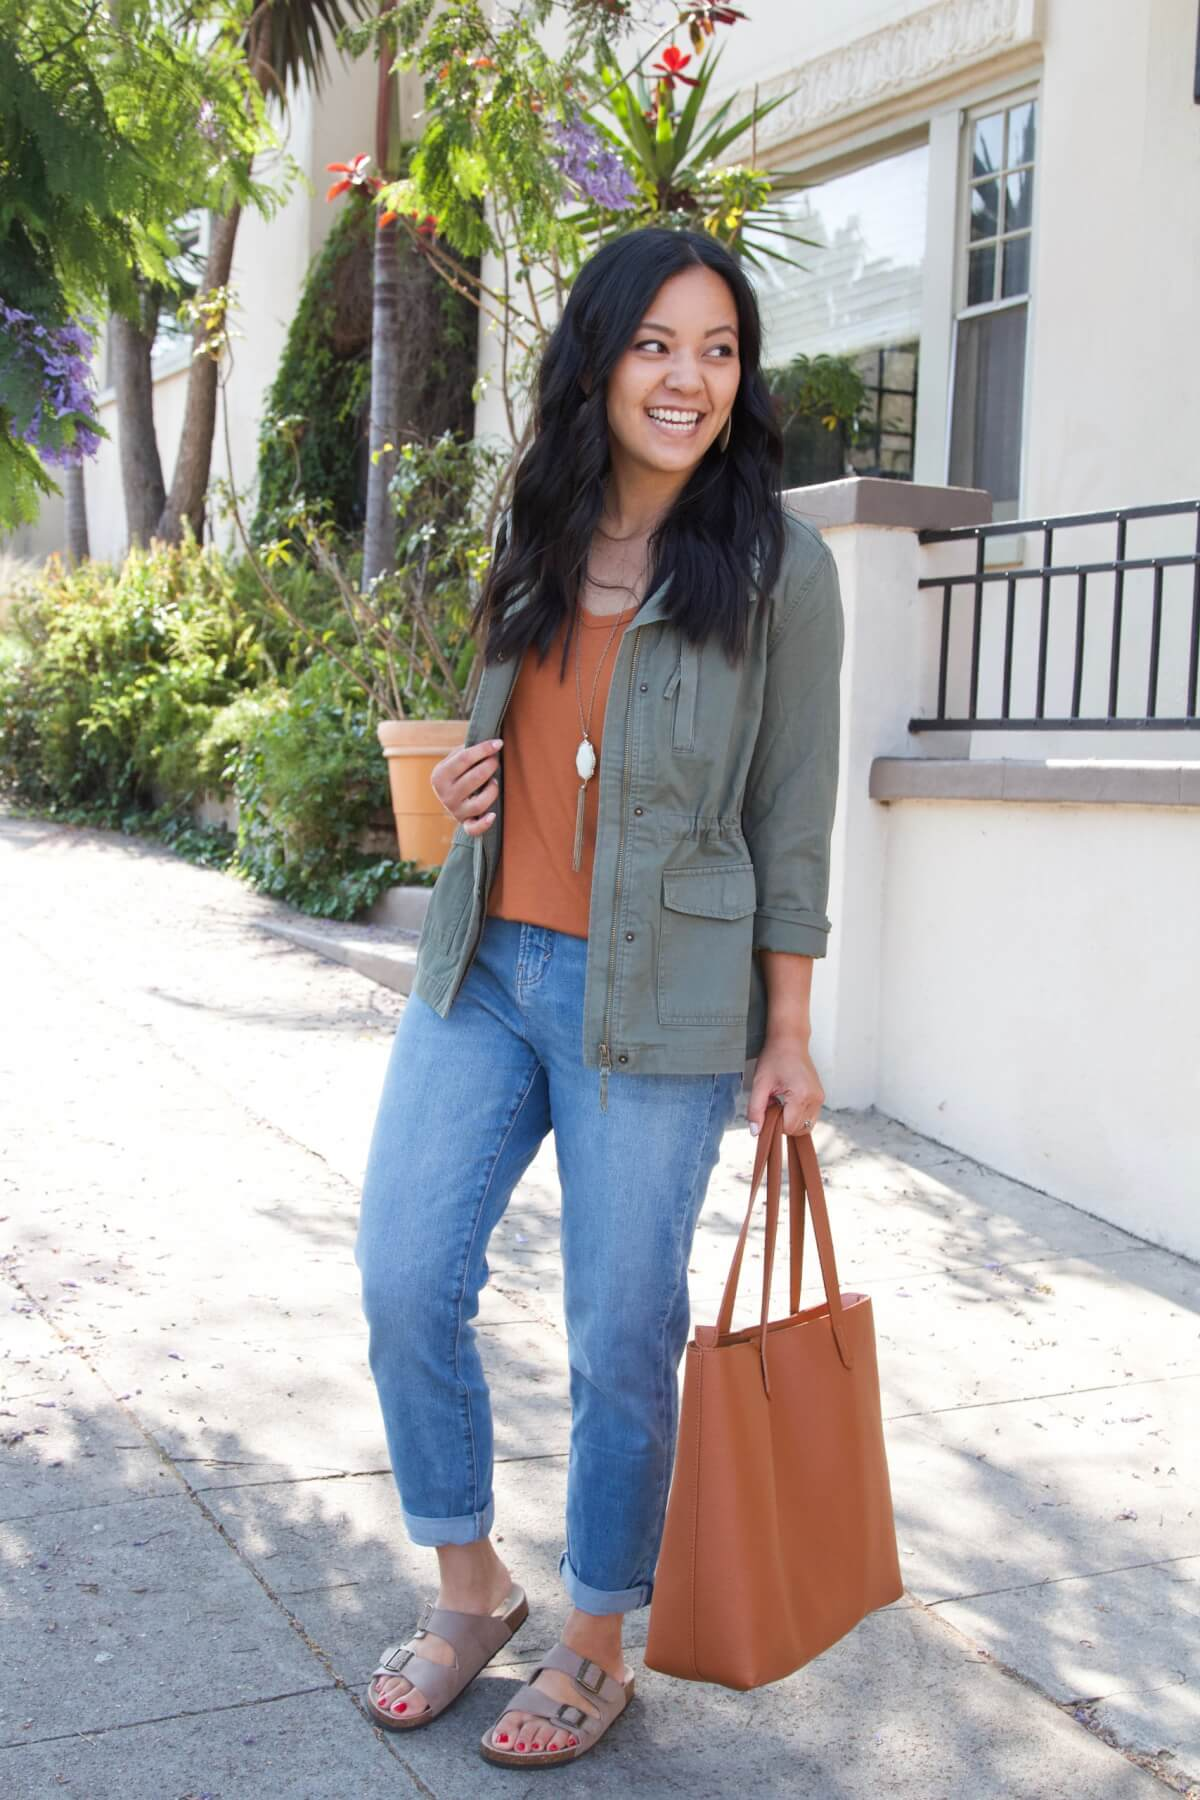 Casual Fall Outfit Summer to Early Fall Transition: olive utility jacket + pumpkin orange top + light straight leg jeans + taupe birkenstock sandals + pendant necklace + tan tote